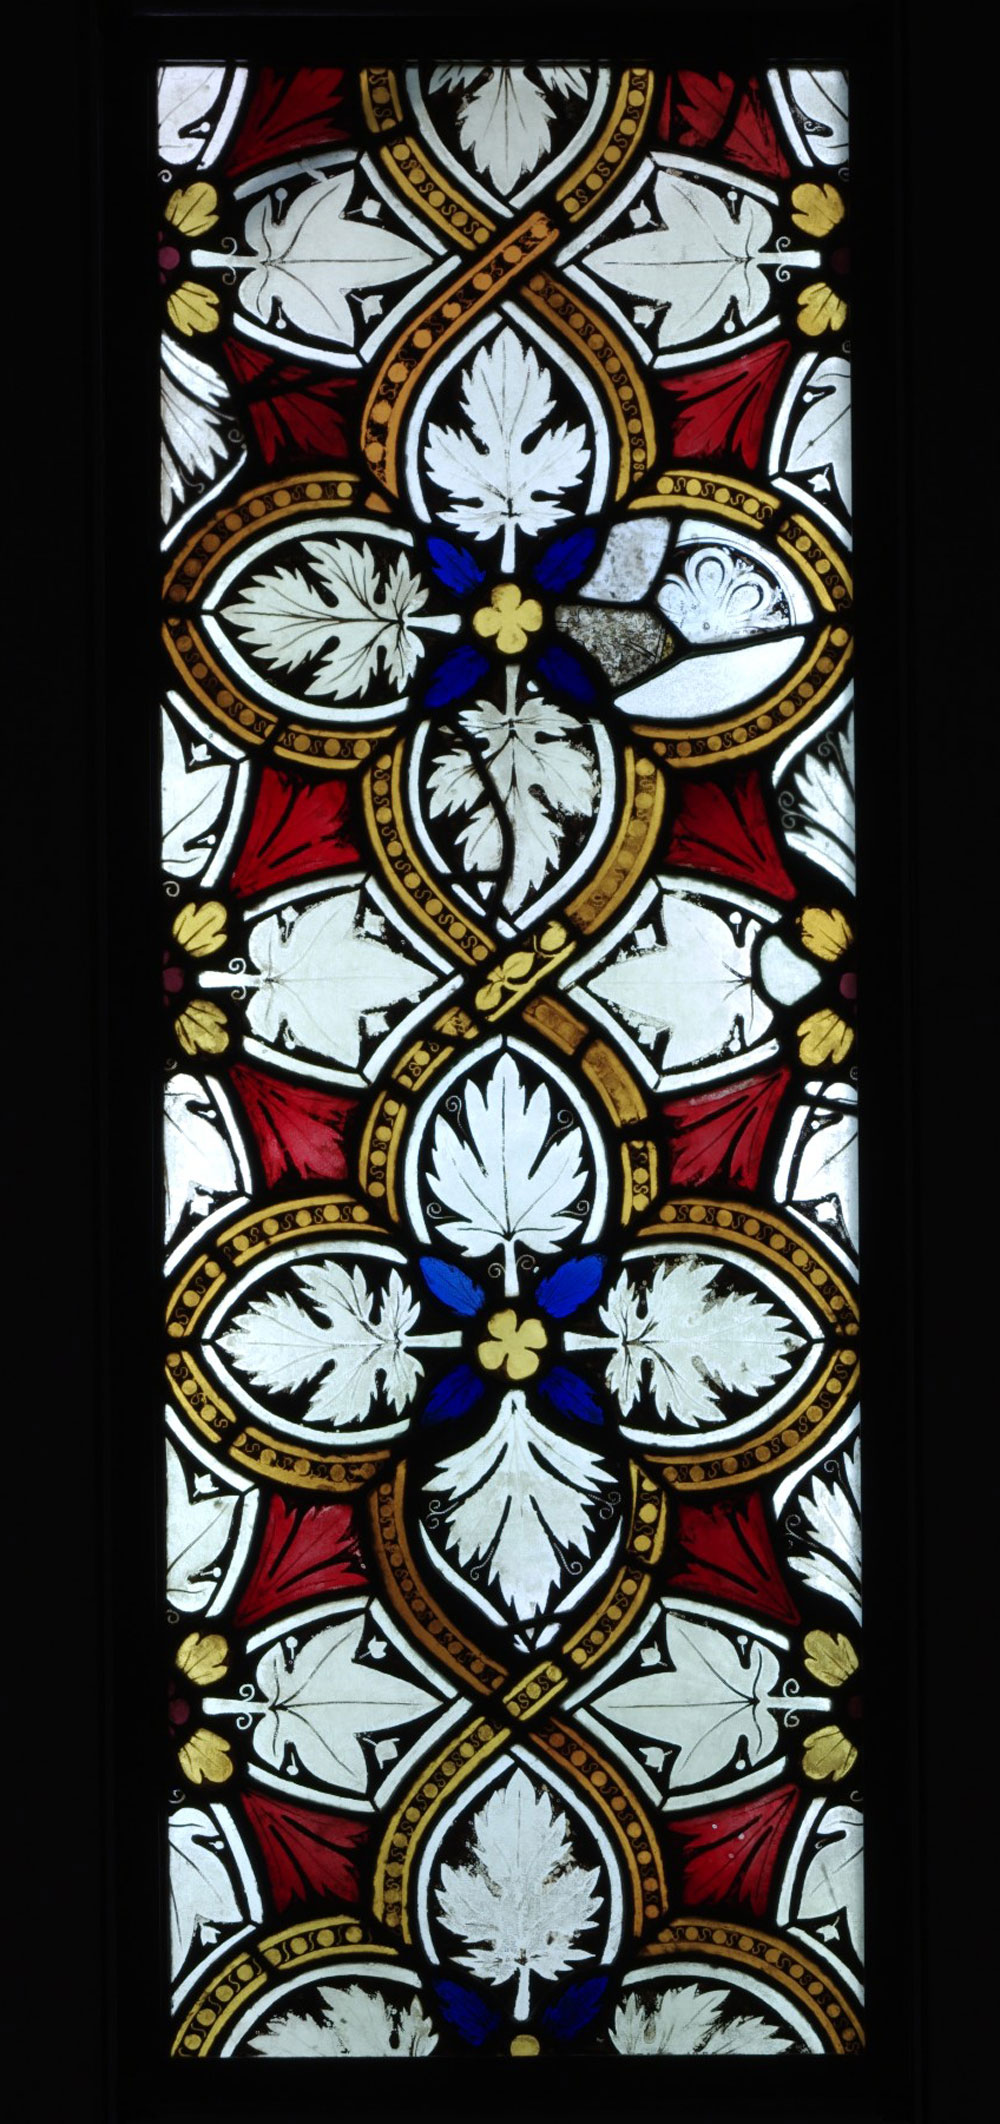 Christian symbolism the natural world victoria and albert museum panel unknown maker about 1290 museum no 5462 1858 biocorpaavc Image collections